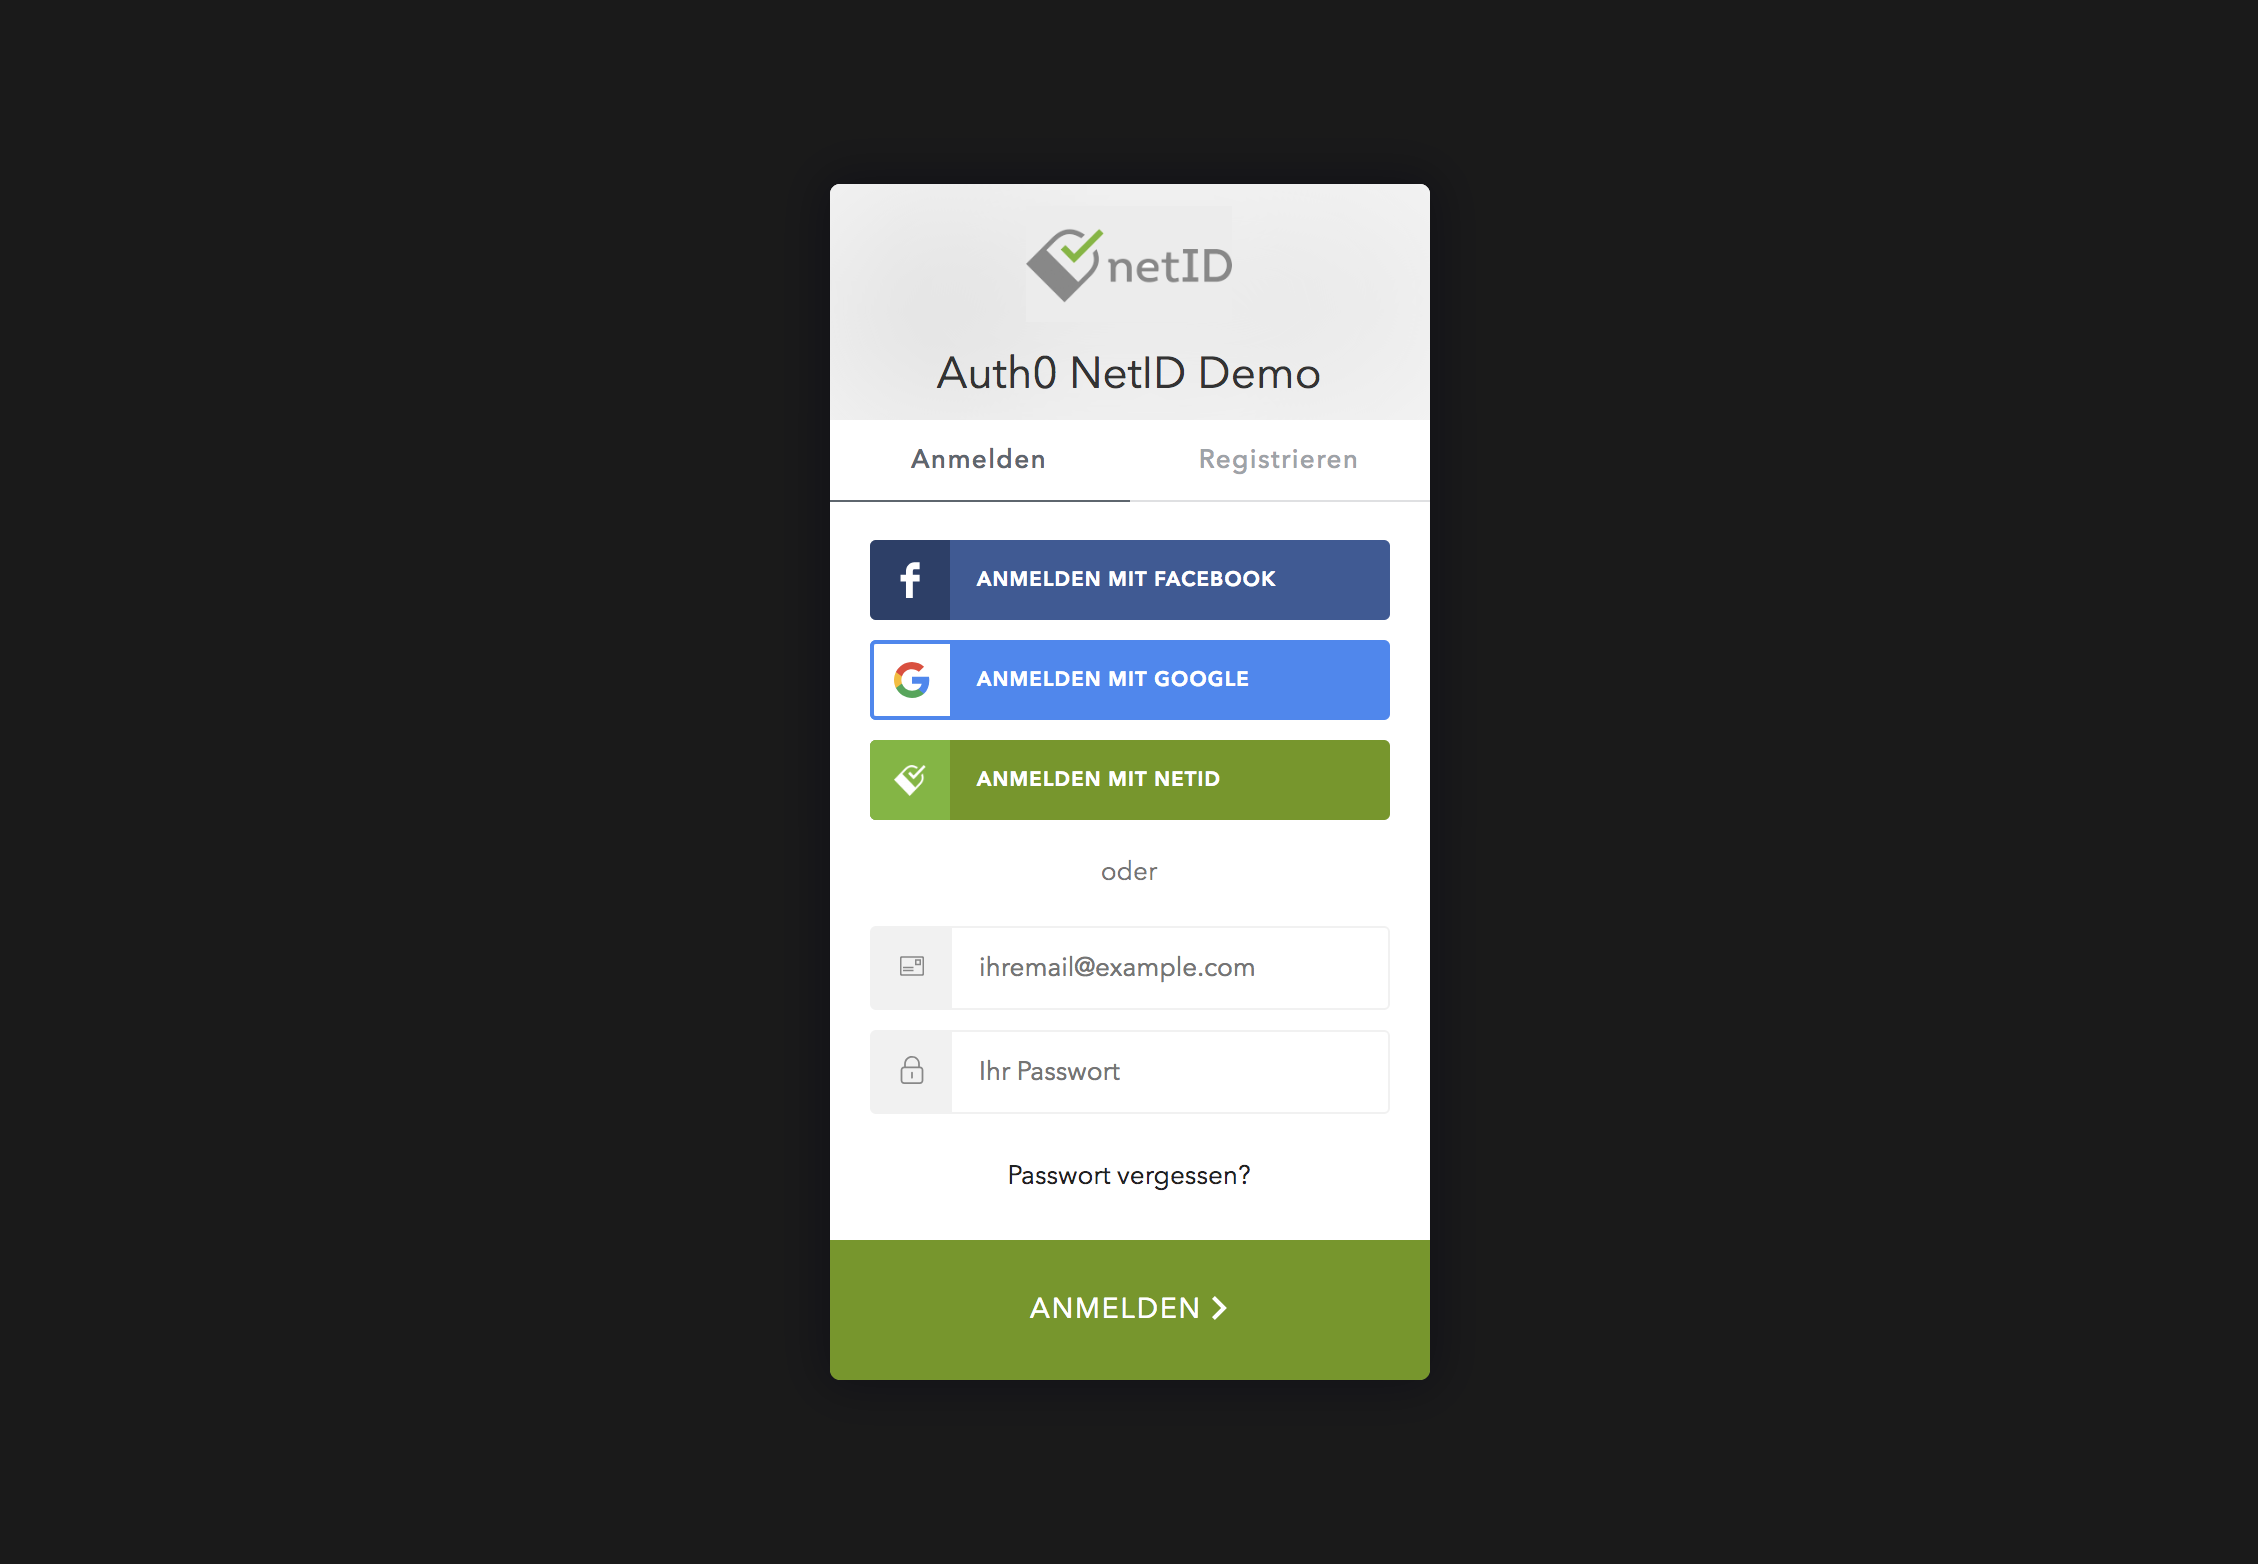 Auth0 login screen with netID as a custom social connection